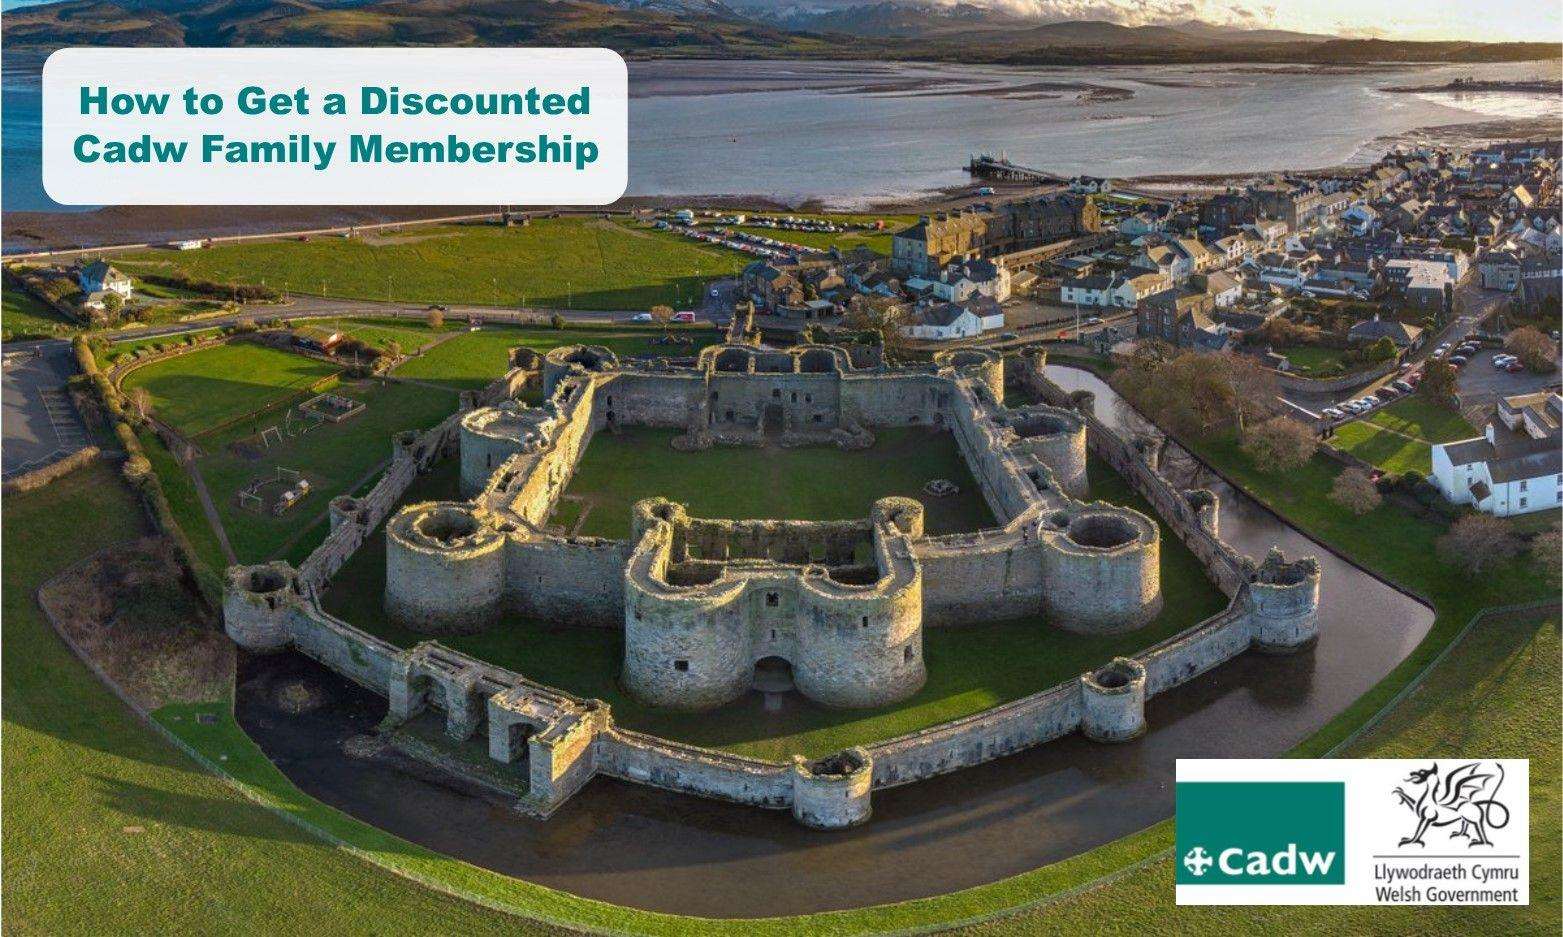 How to Get a Cadw Annual Family Membership from as little as £13.50